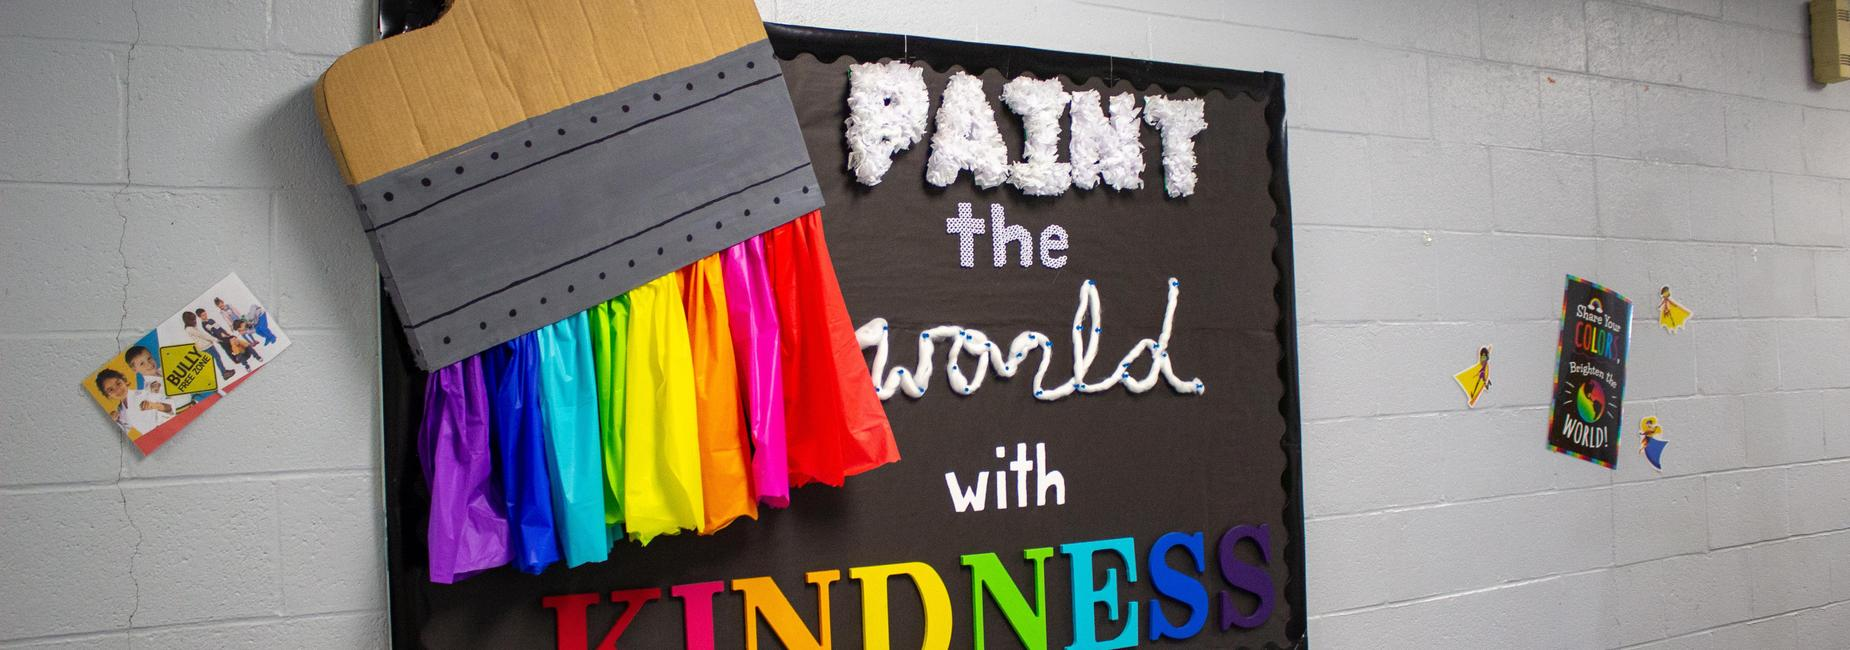 Paint the world with kindness.